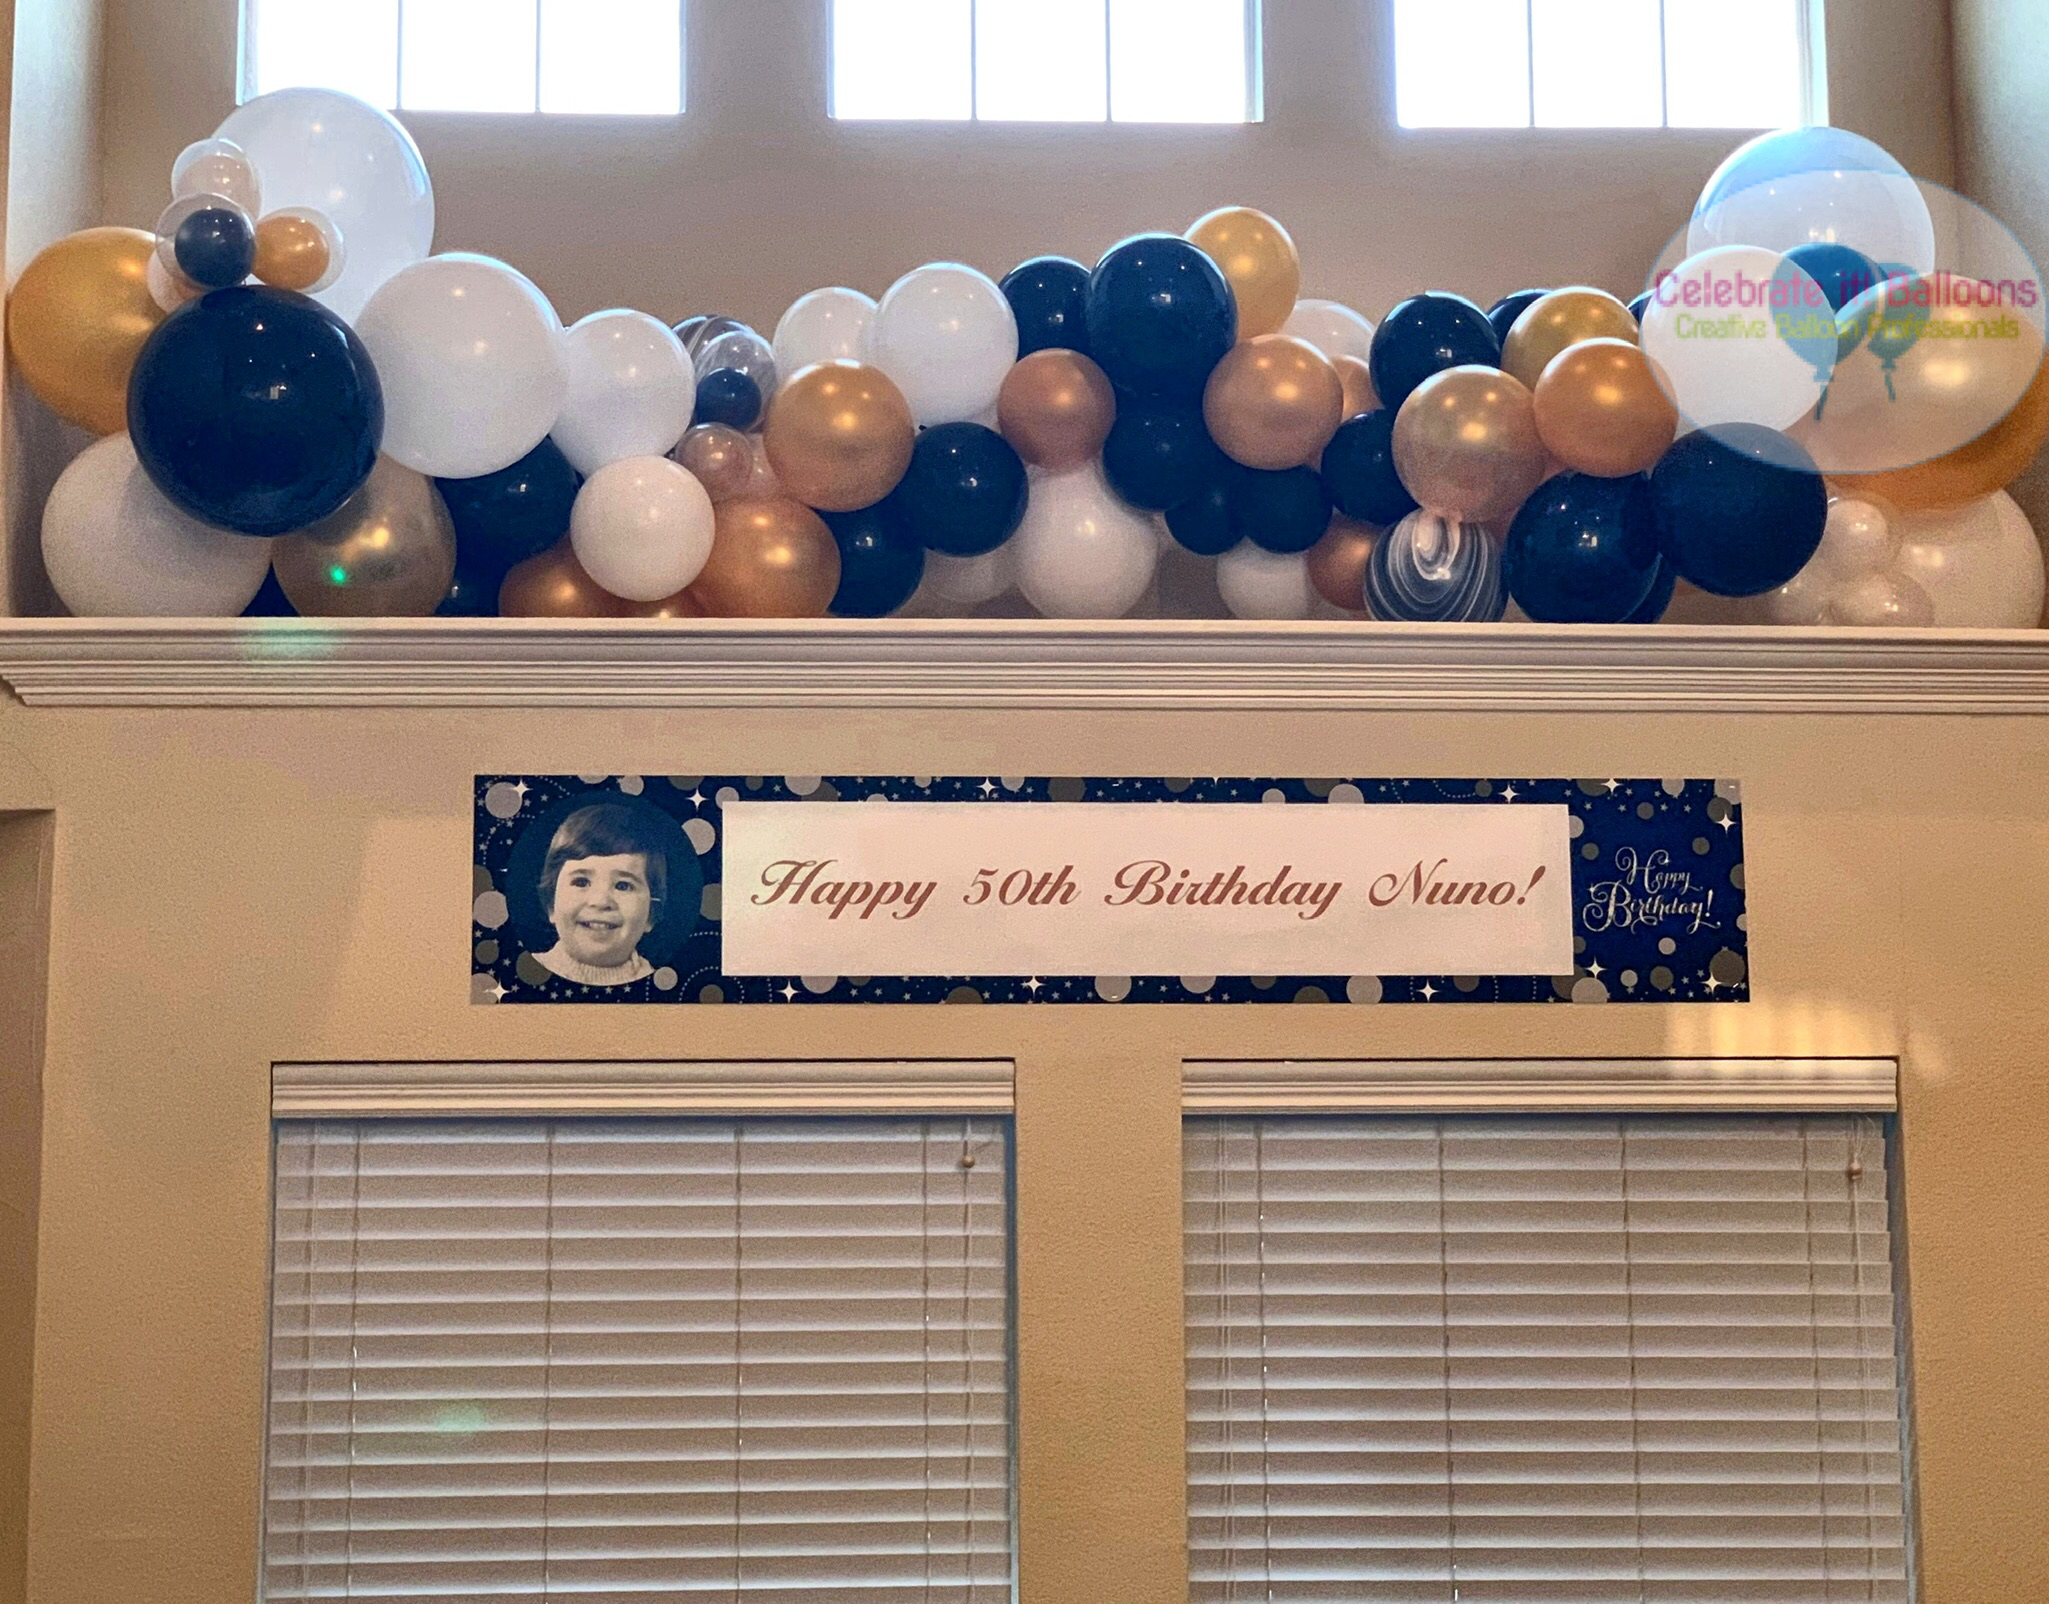 Birthday party decor: organic balloon garland for alcove